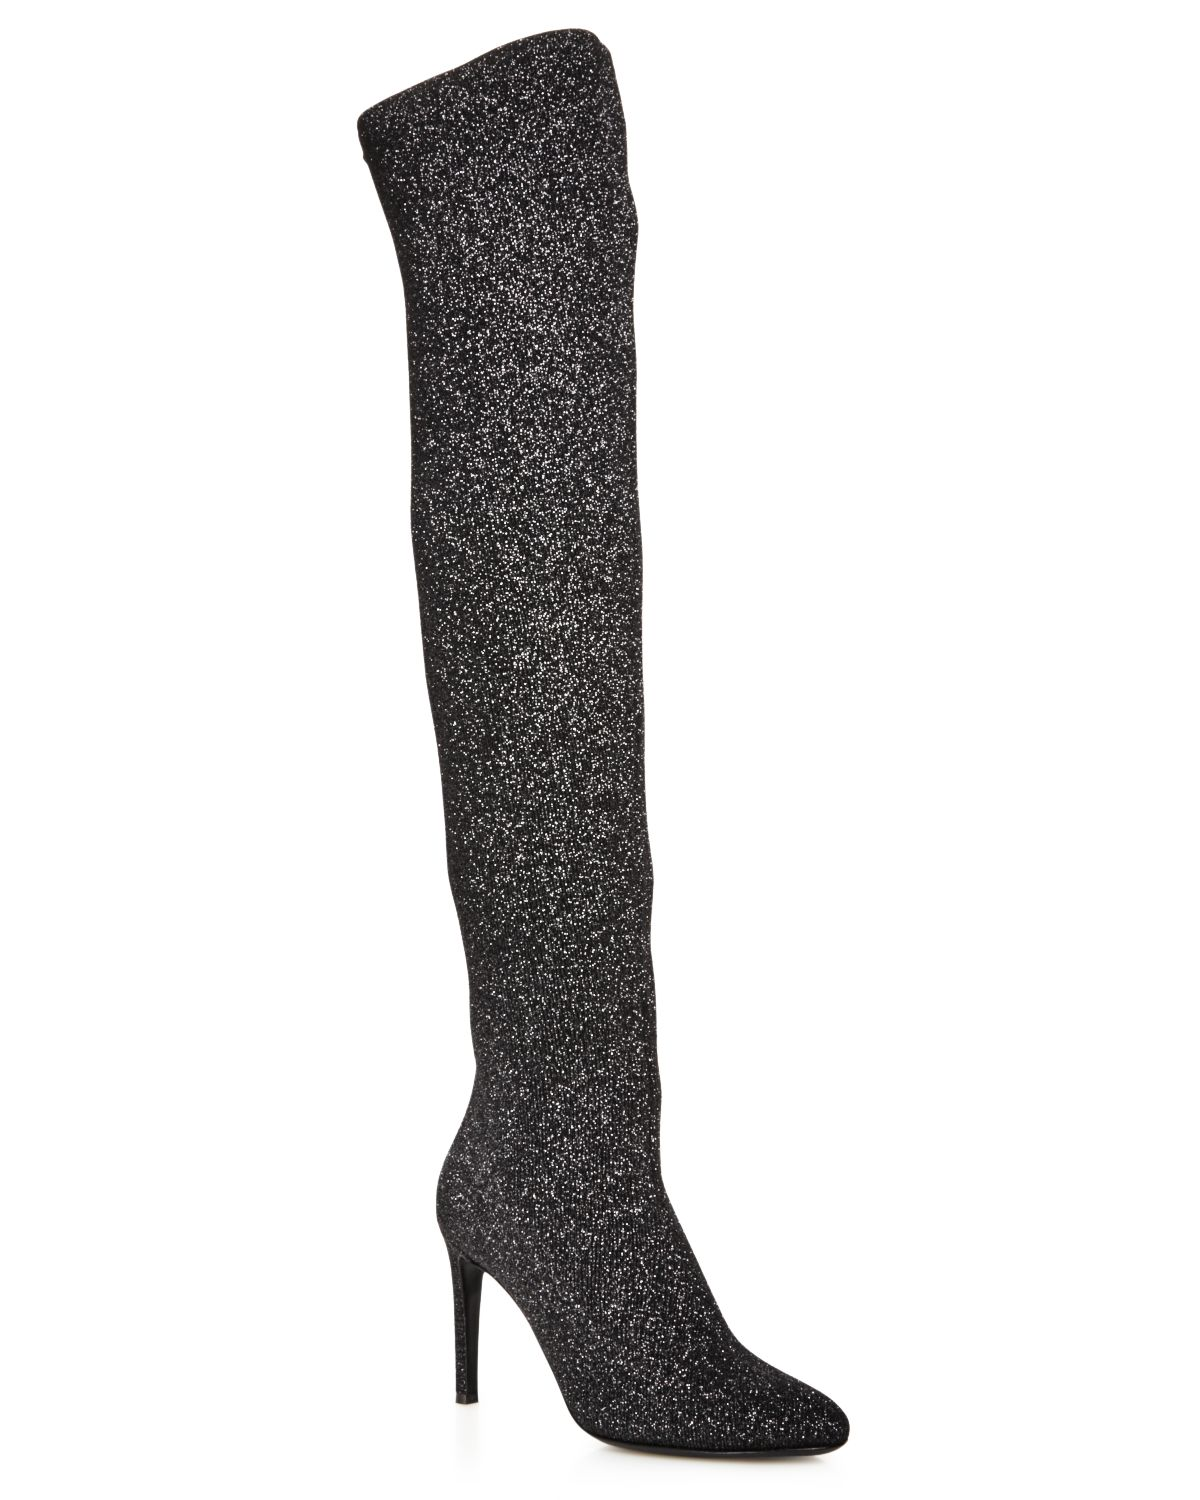 Giuseppe Zanotti Stretch Lurex Over-the-Knee Boots